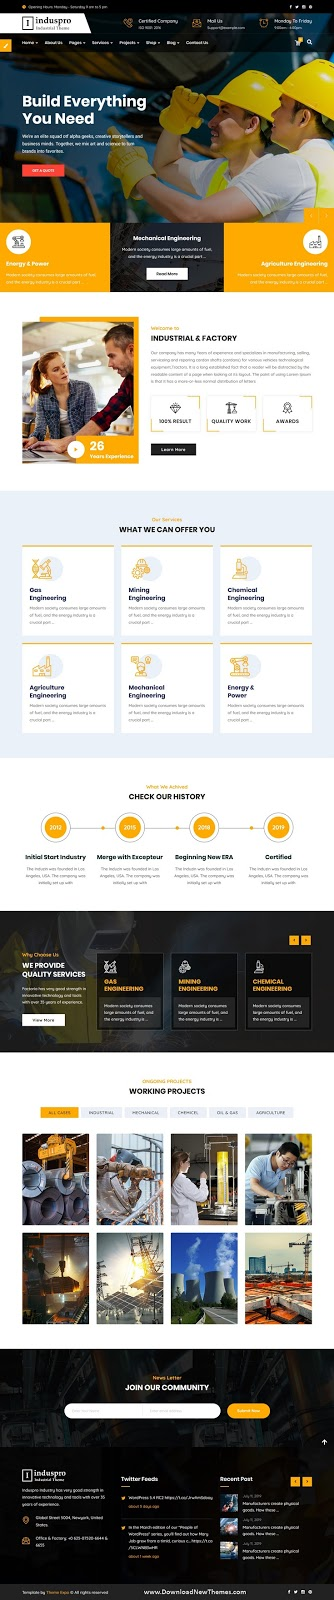 Best Factory and Industrial WordPress Theme